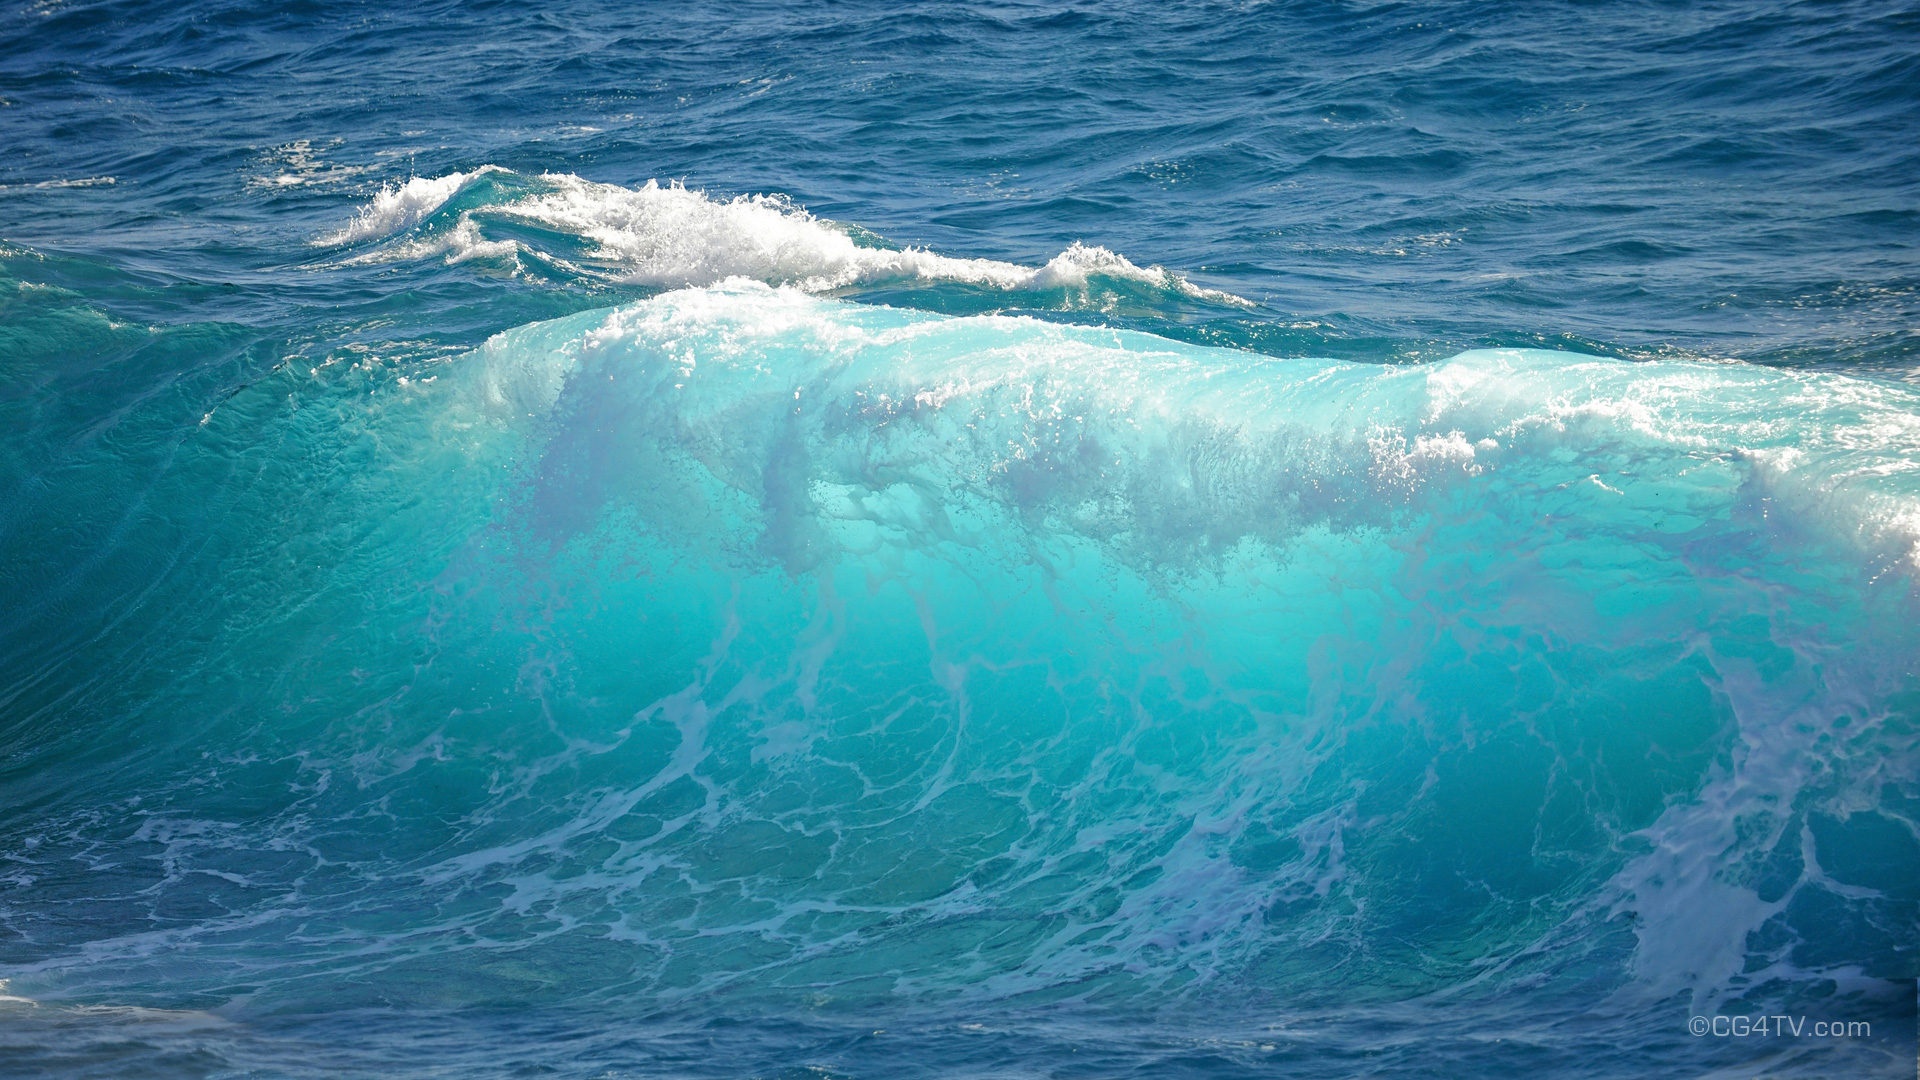 Waves clipart wave power. Buoyed by government approval